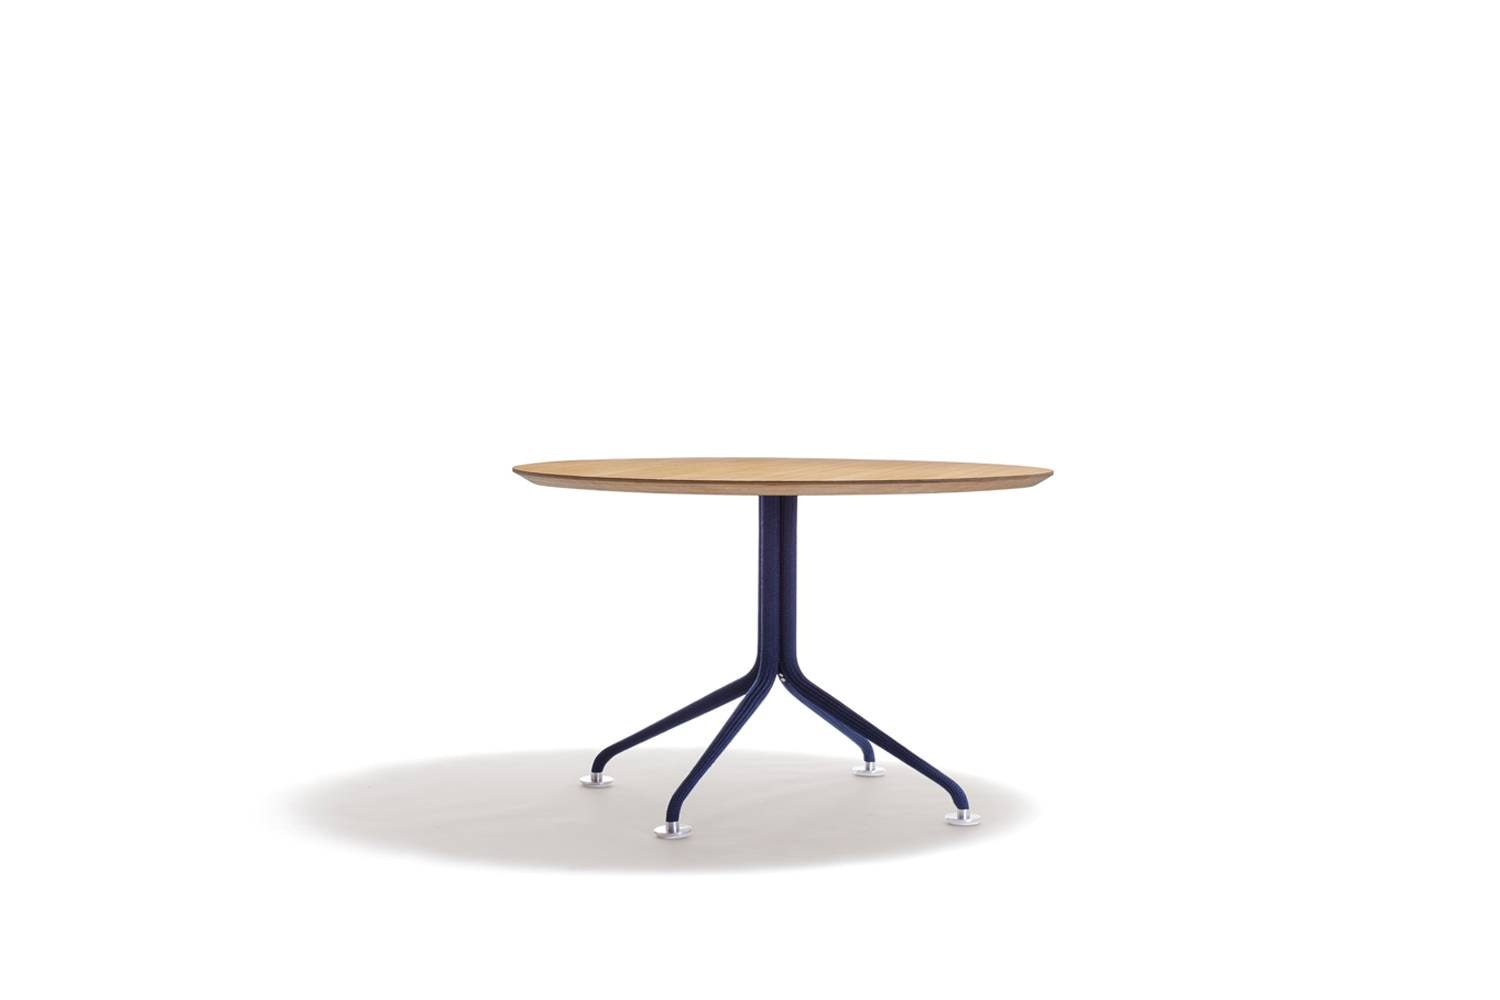 Aria Table by Enrico Franzolini for Accademia